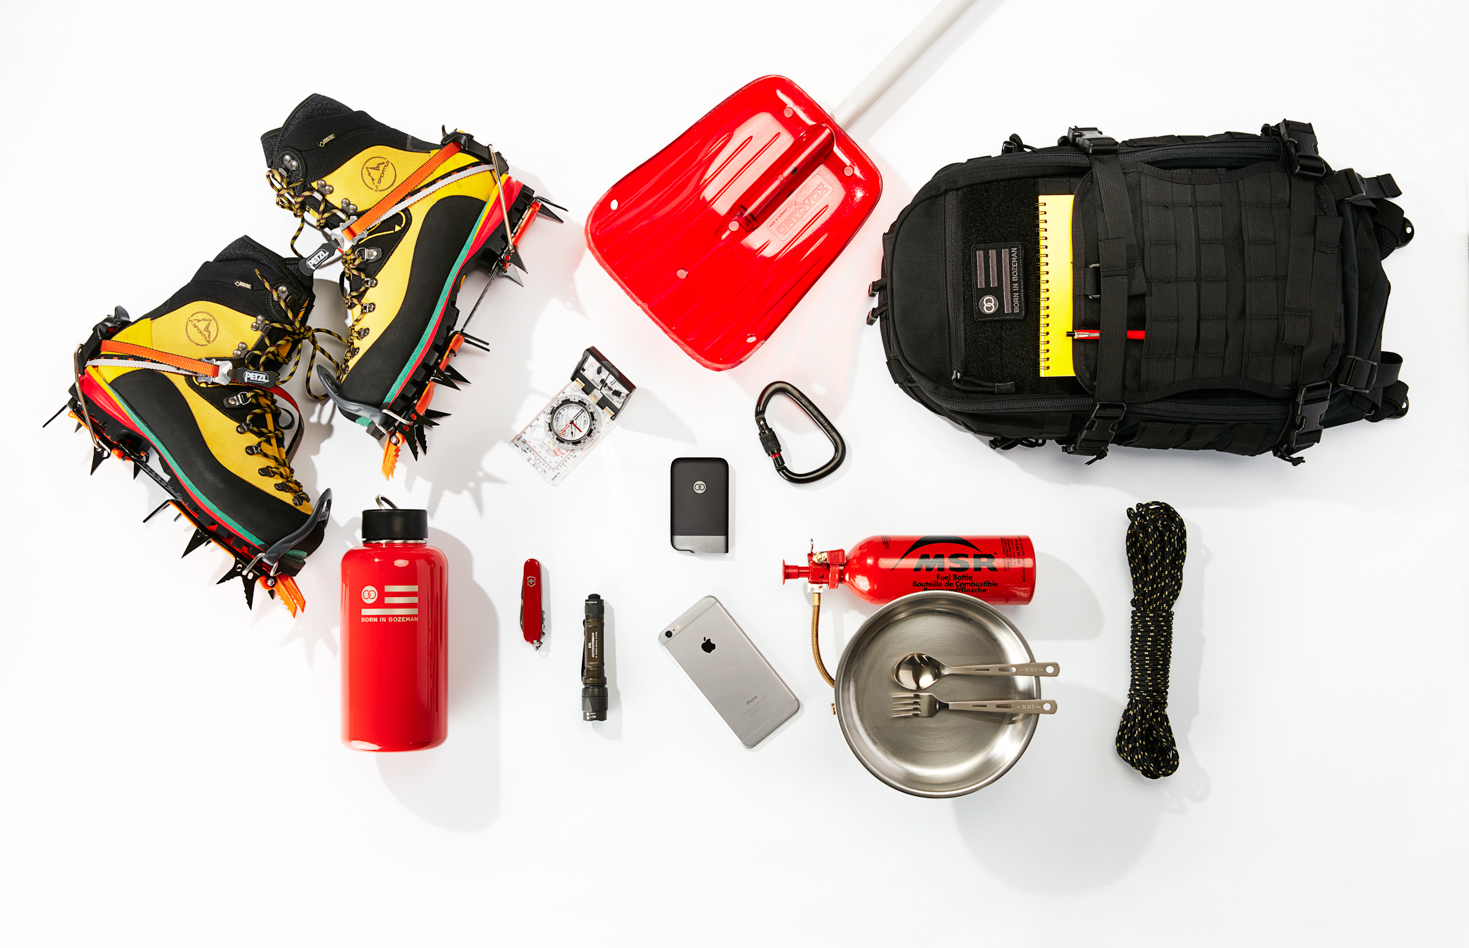 One of the smallest items in this photo can save your hide in the backcountry if you get lost. Photo: Beartooth